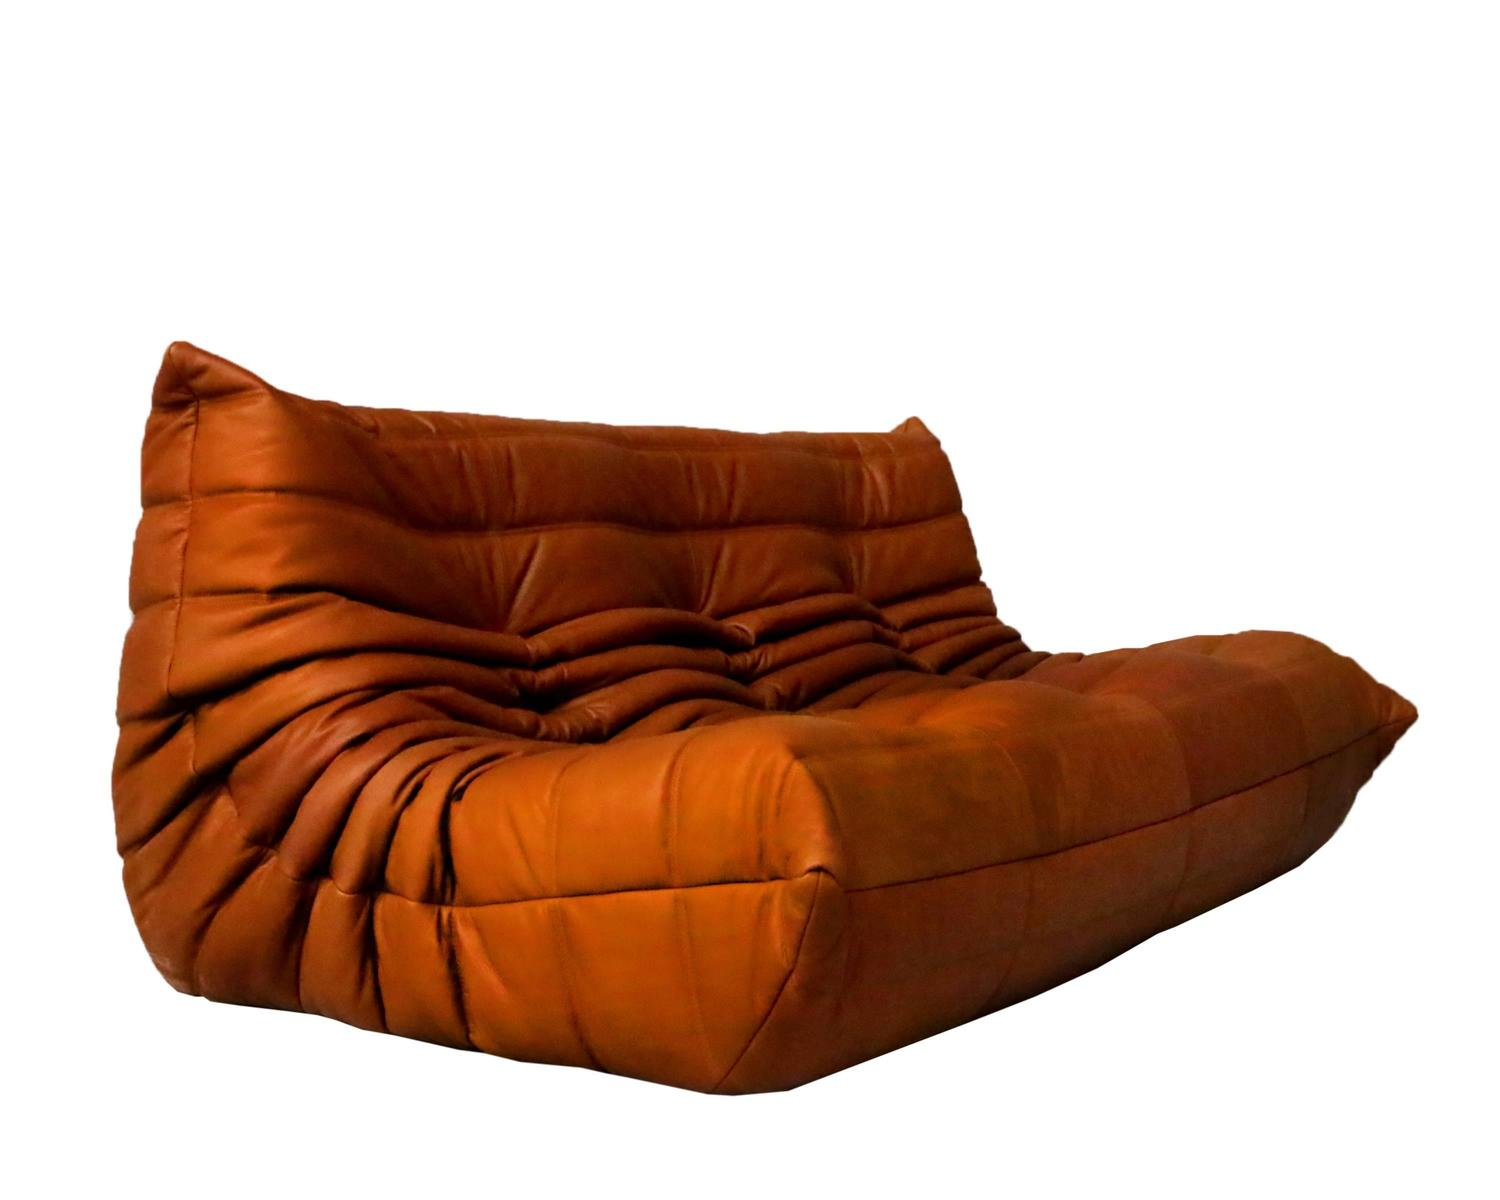 different styles of sofas crowdbuild for